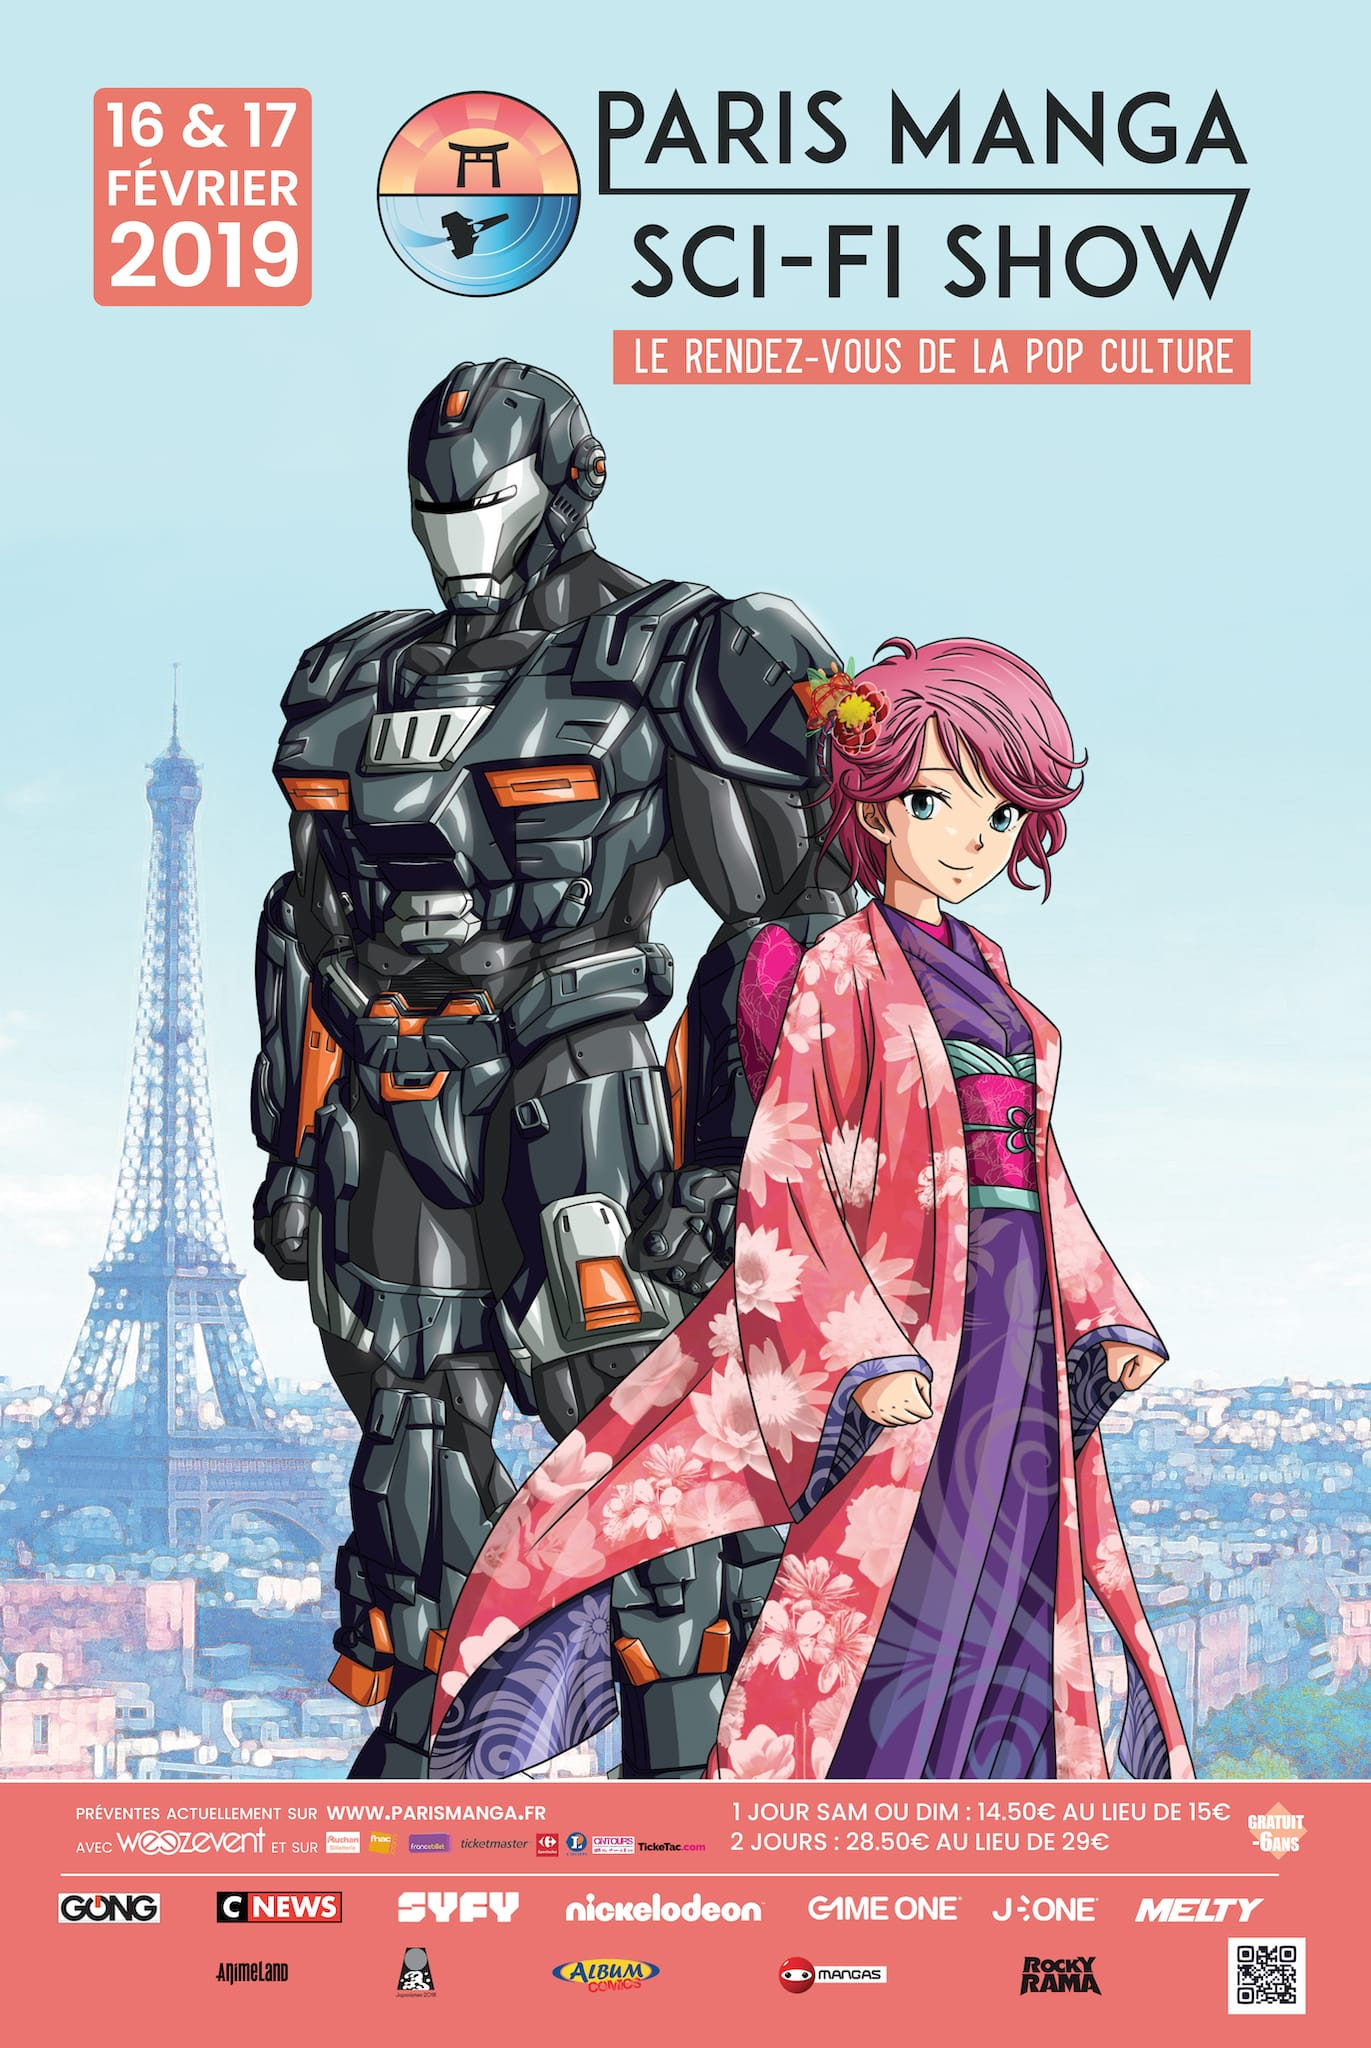 Paris Manga & Sci-Fi Show 2019 affiche convention pop culture